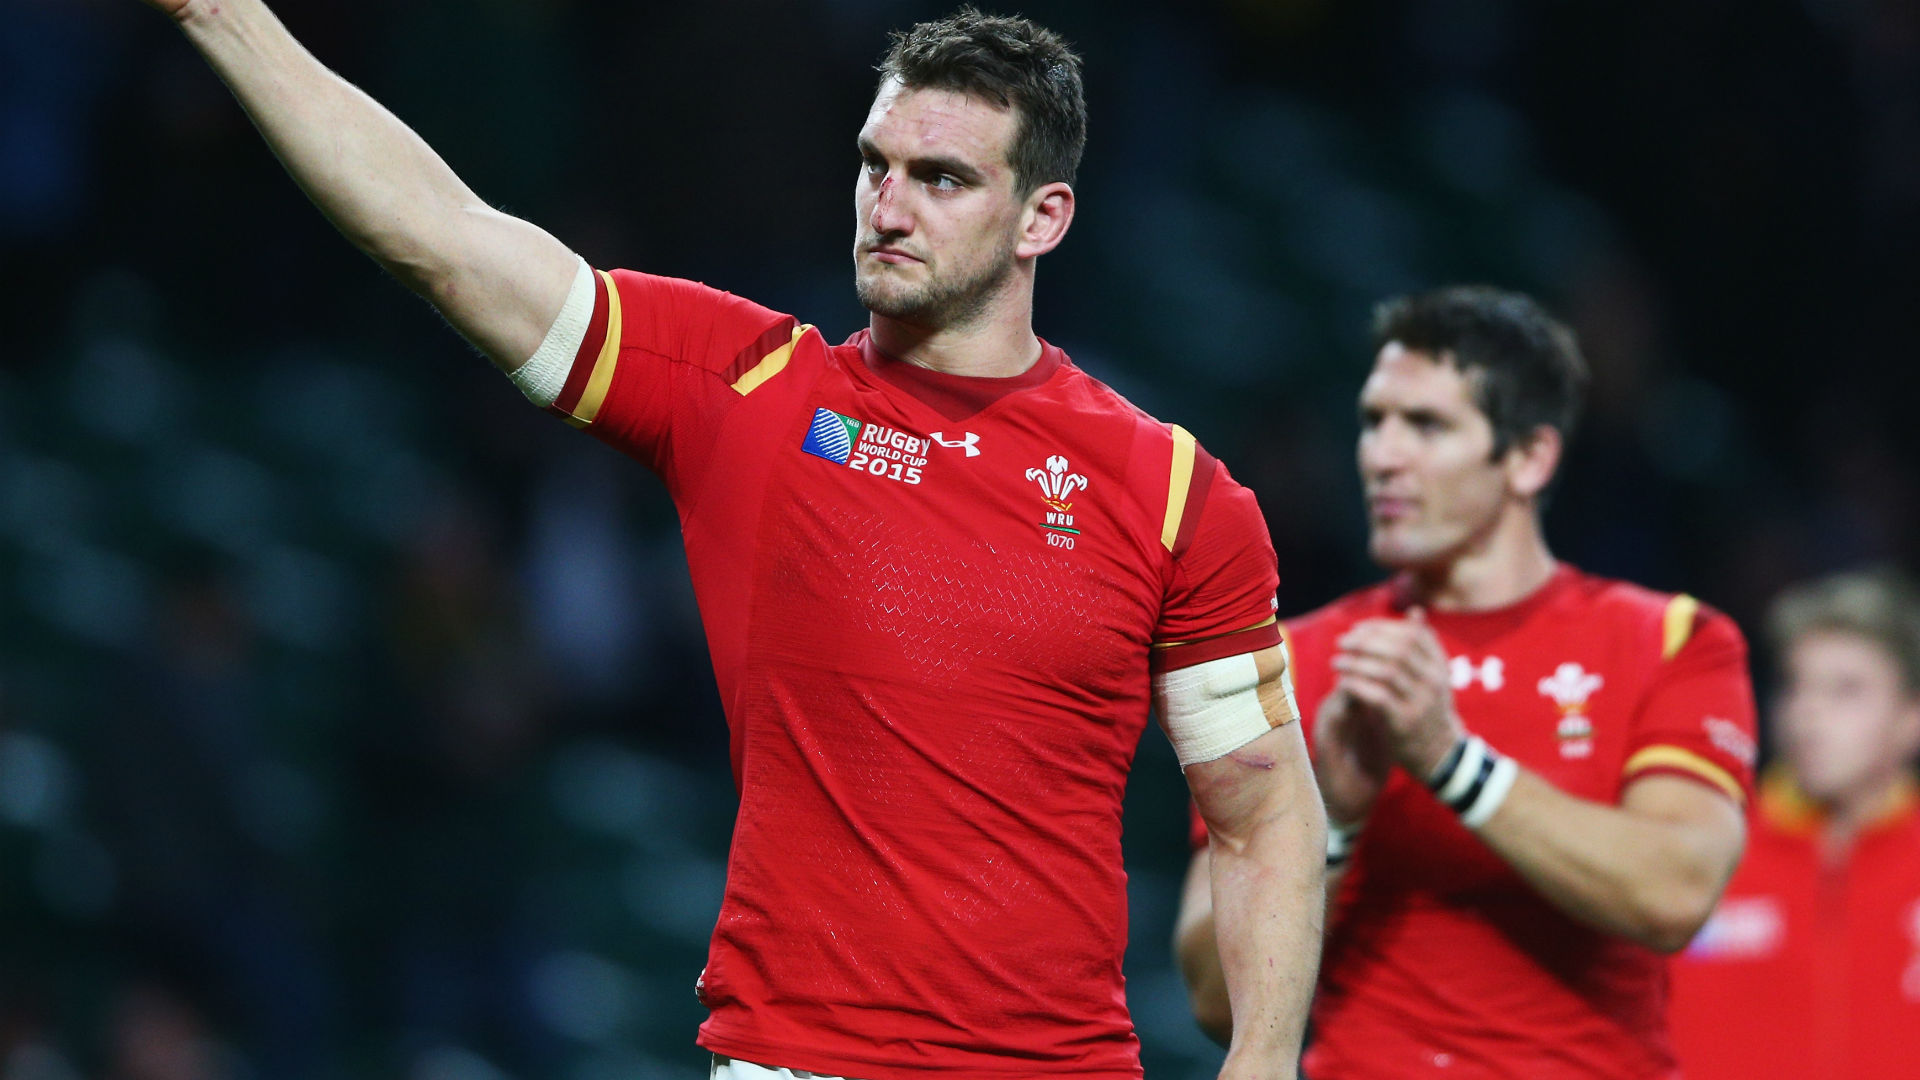 Warburton retires: Bale leads social media tributes to Welsh great